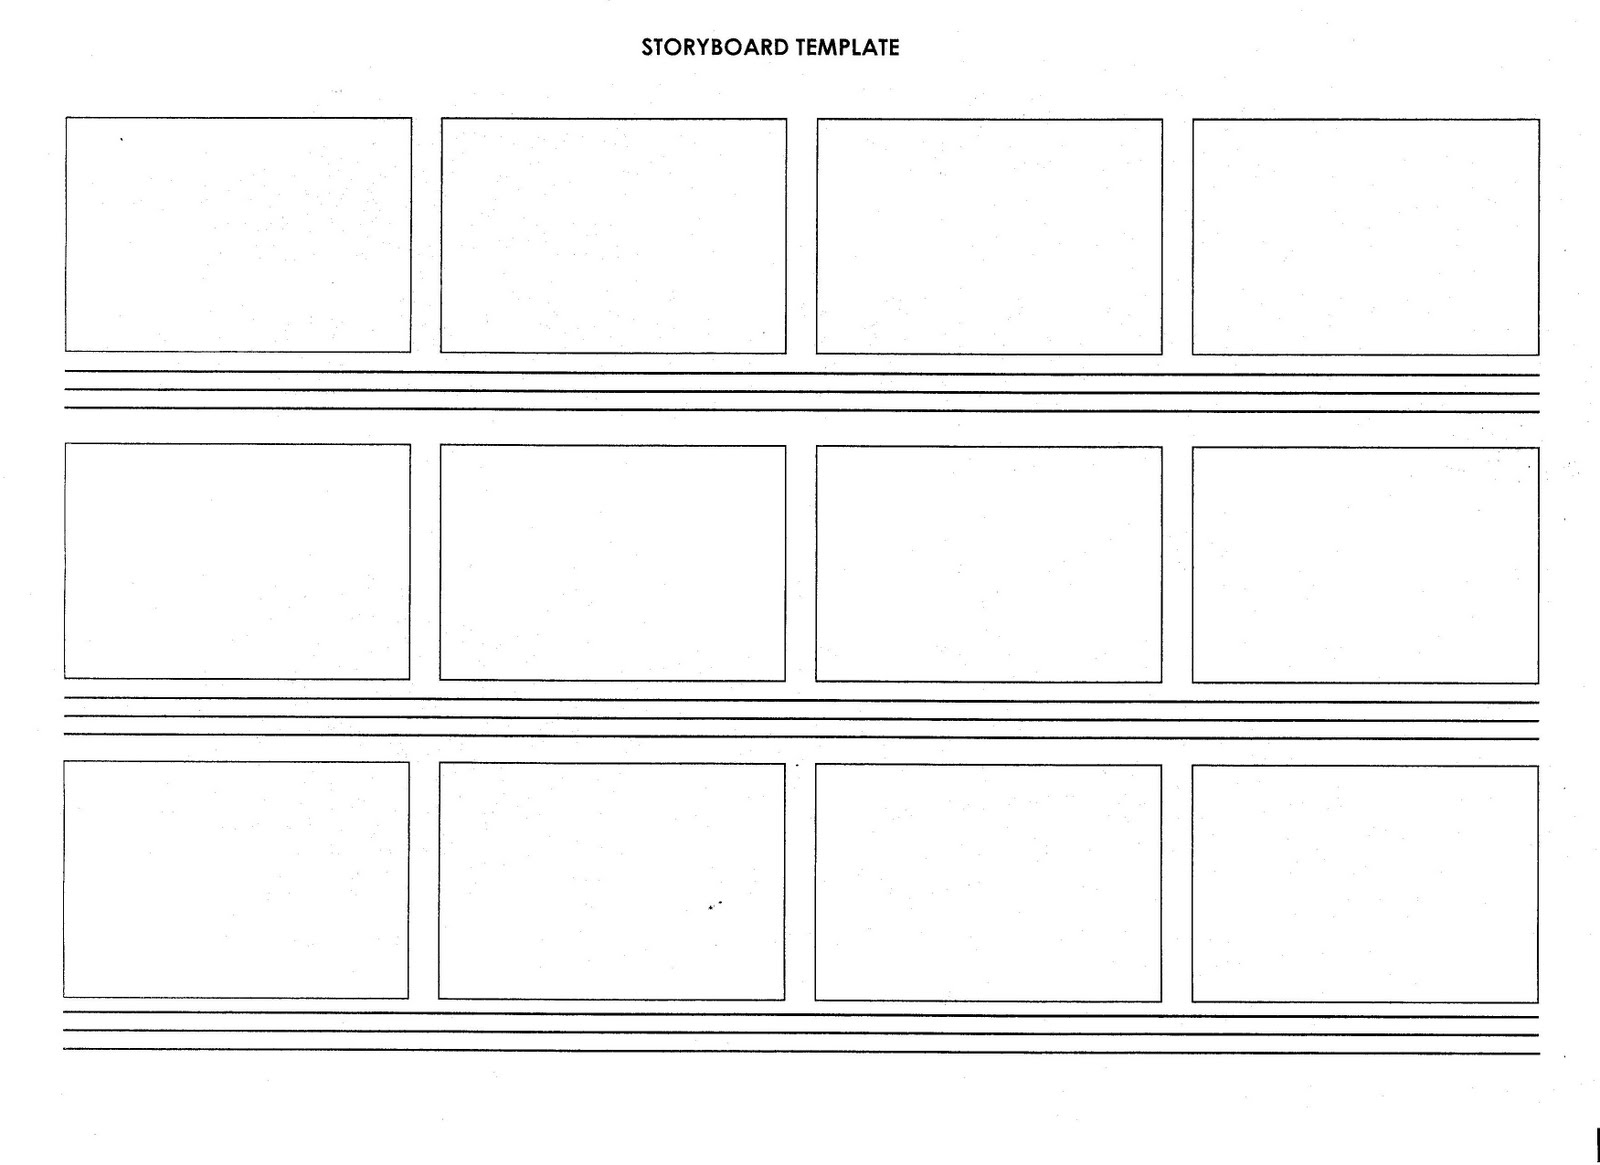 storyboard template, Modern powerpoint